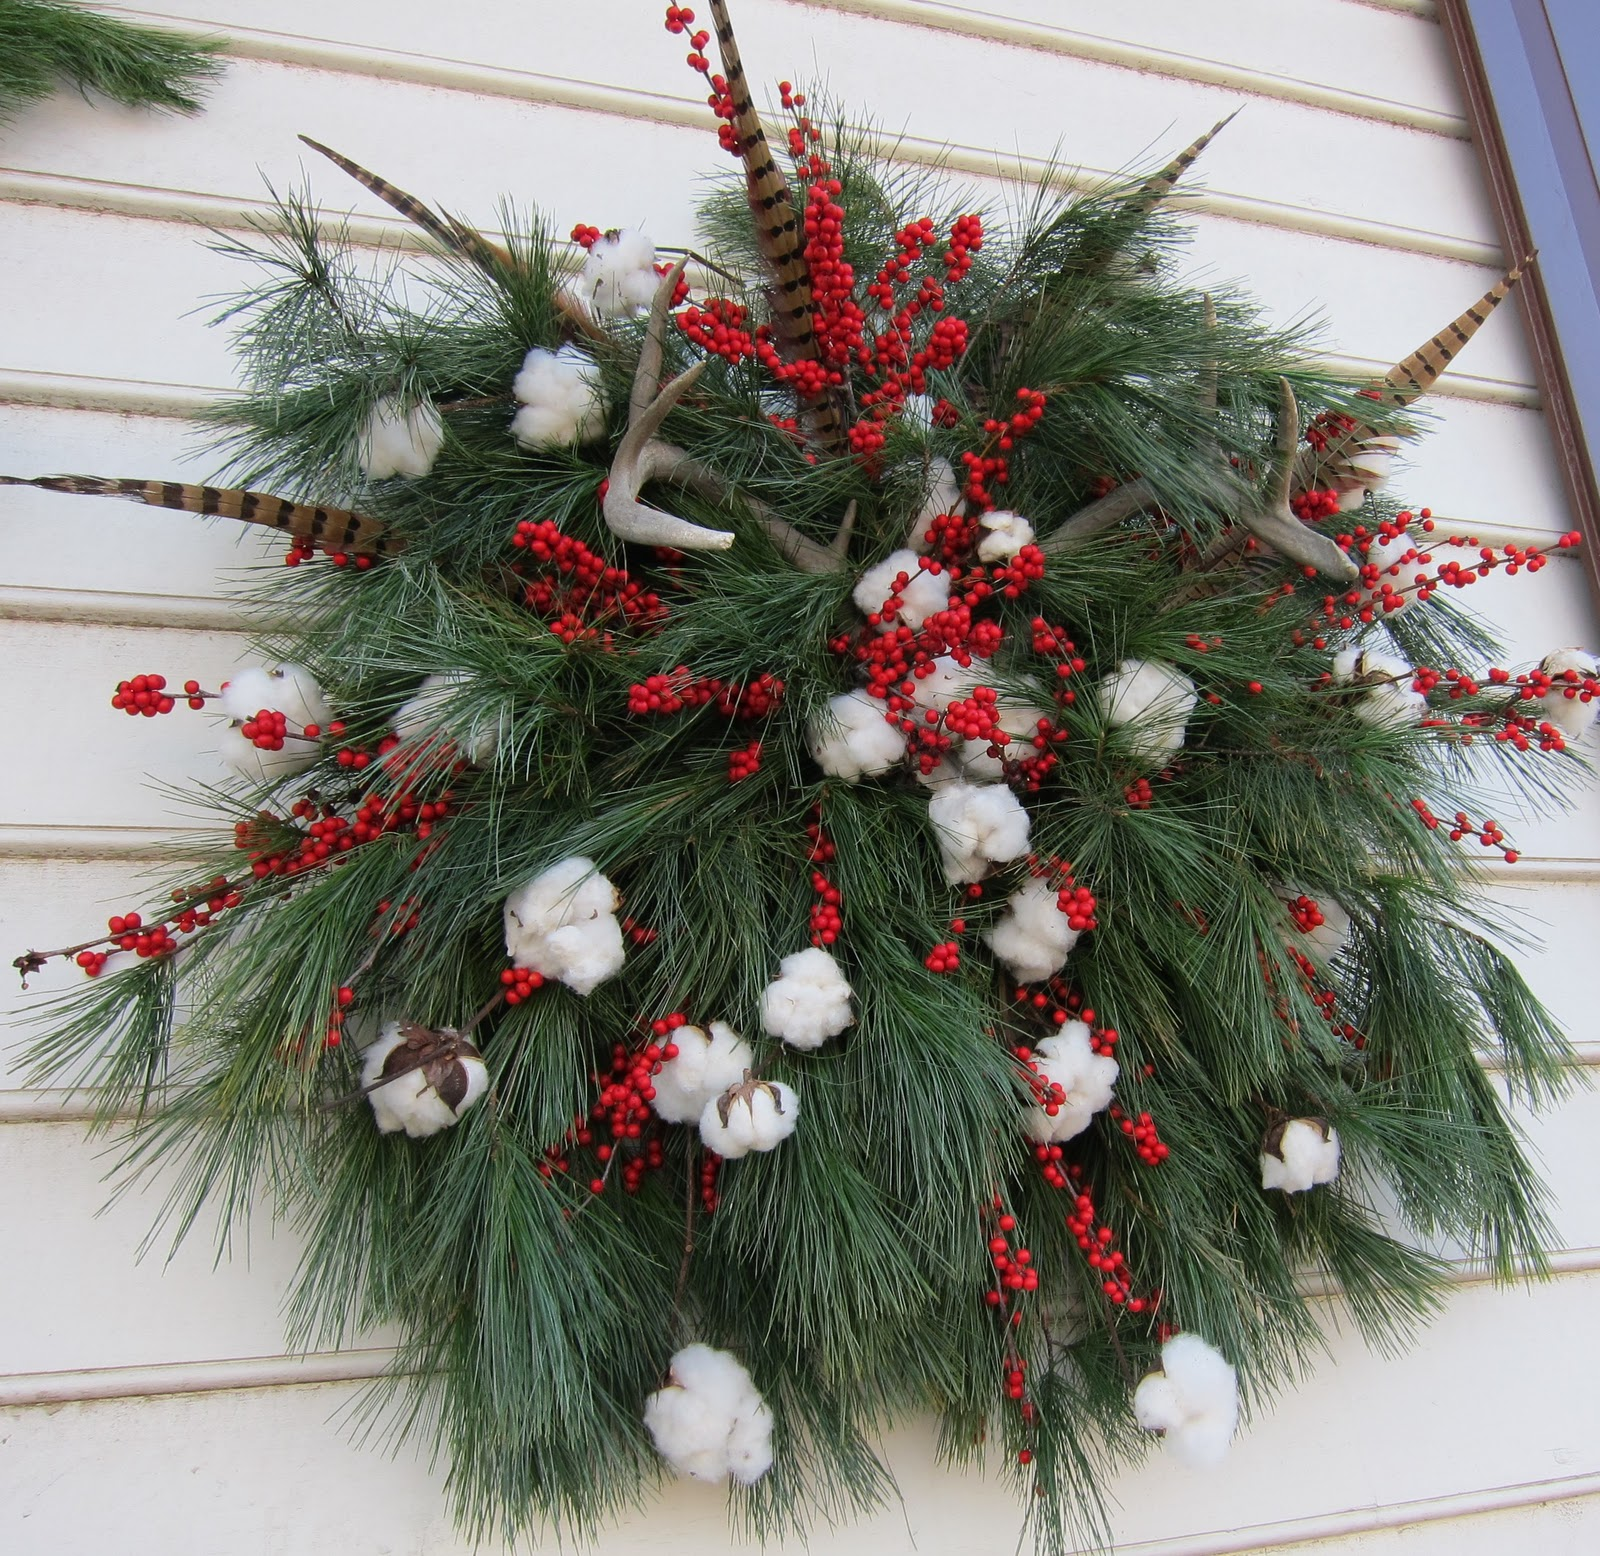 Williamsburg Christmas Decorating Ideas: Colonial Quills: A Williamsburg Christmas